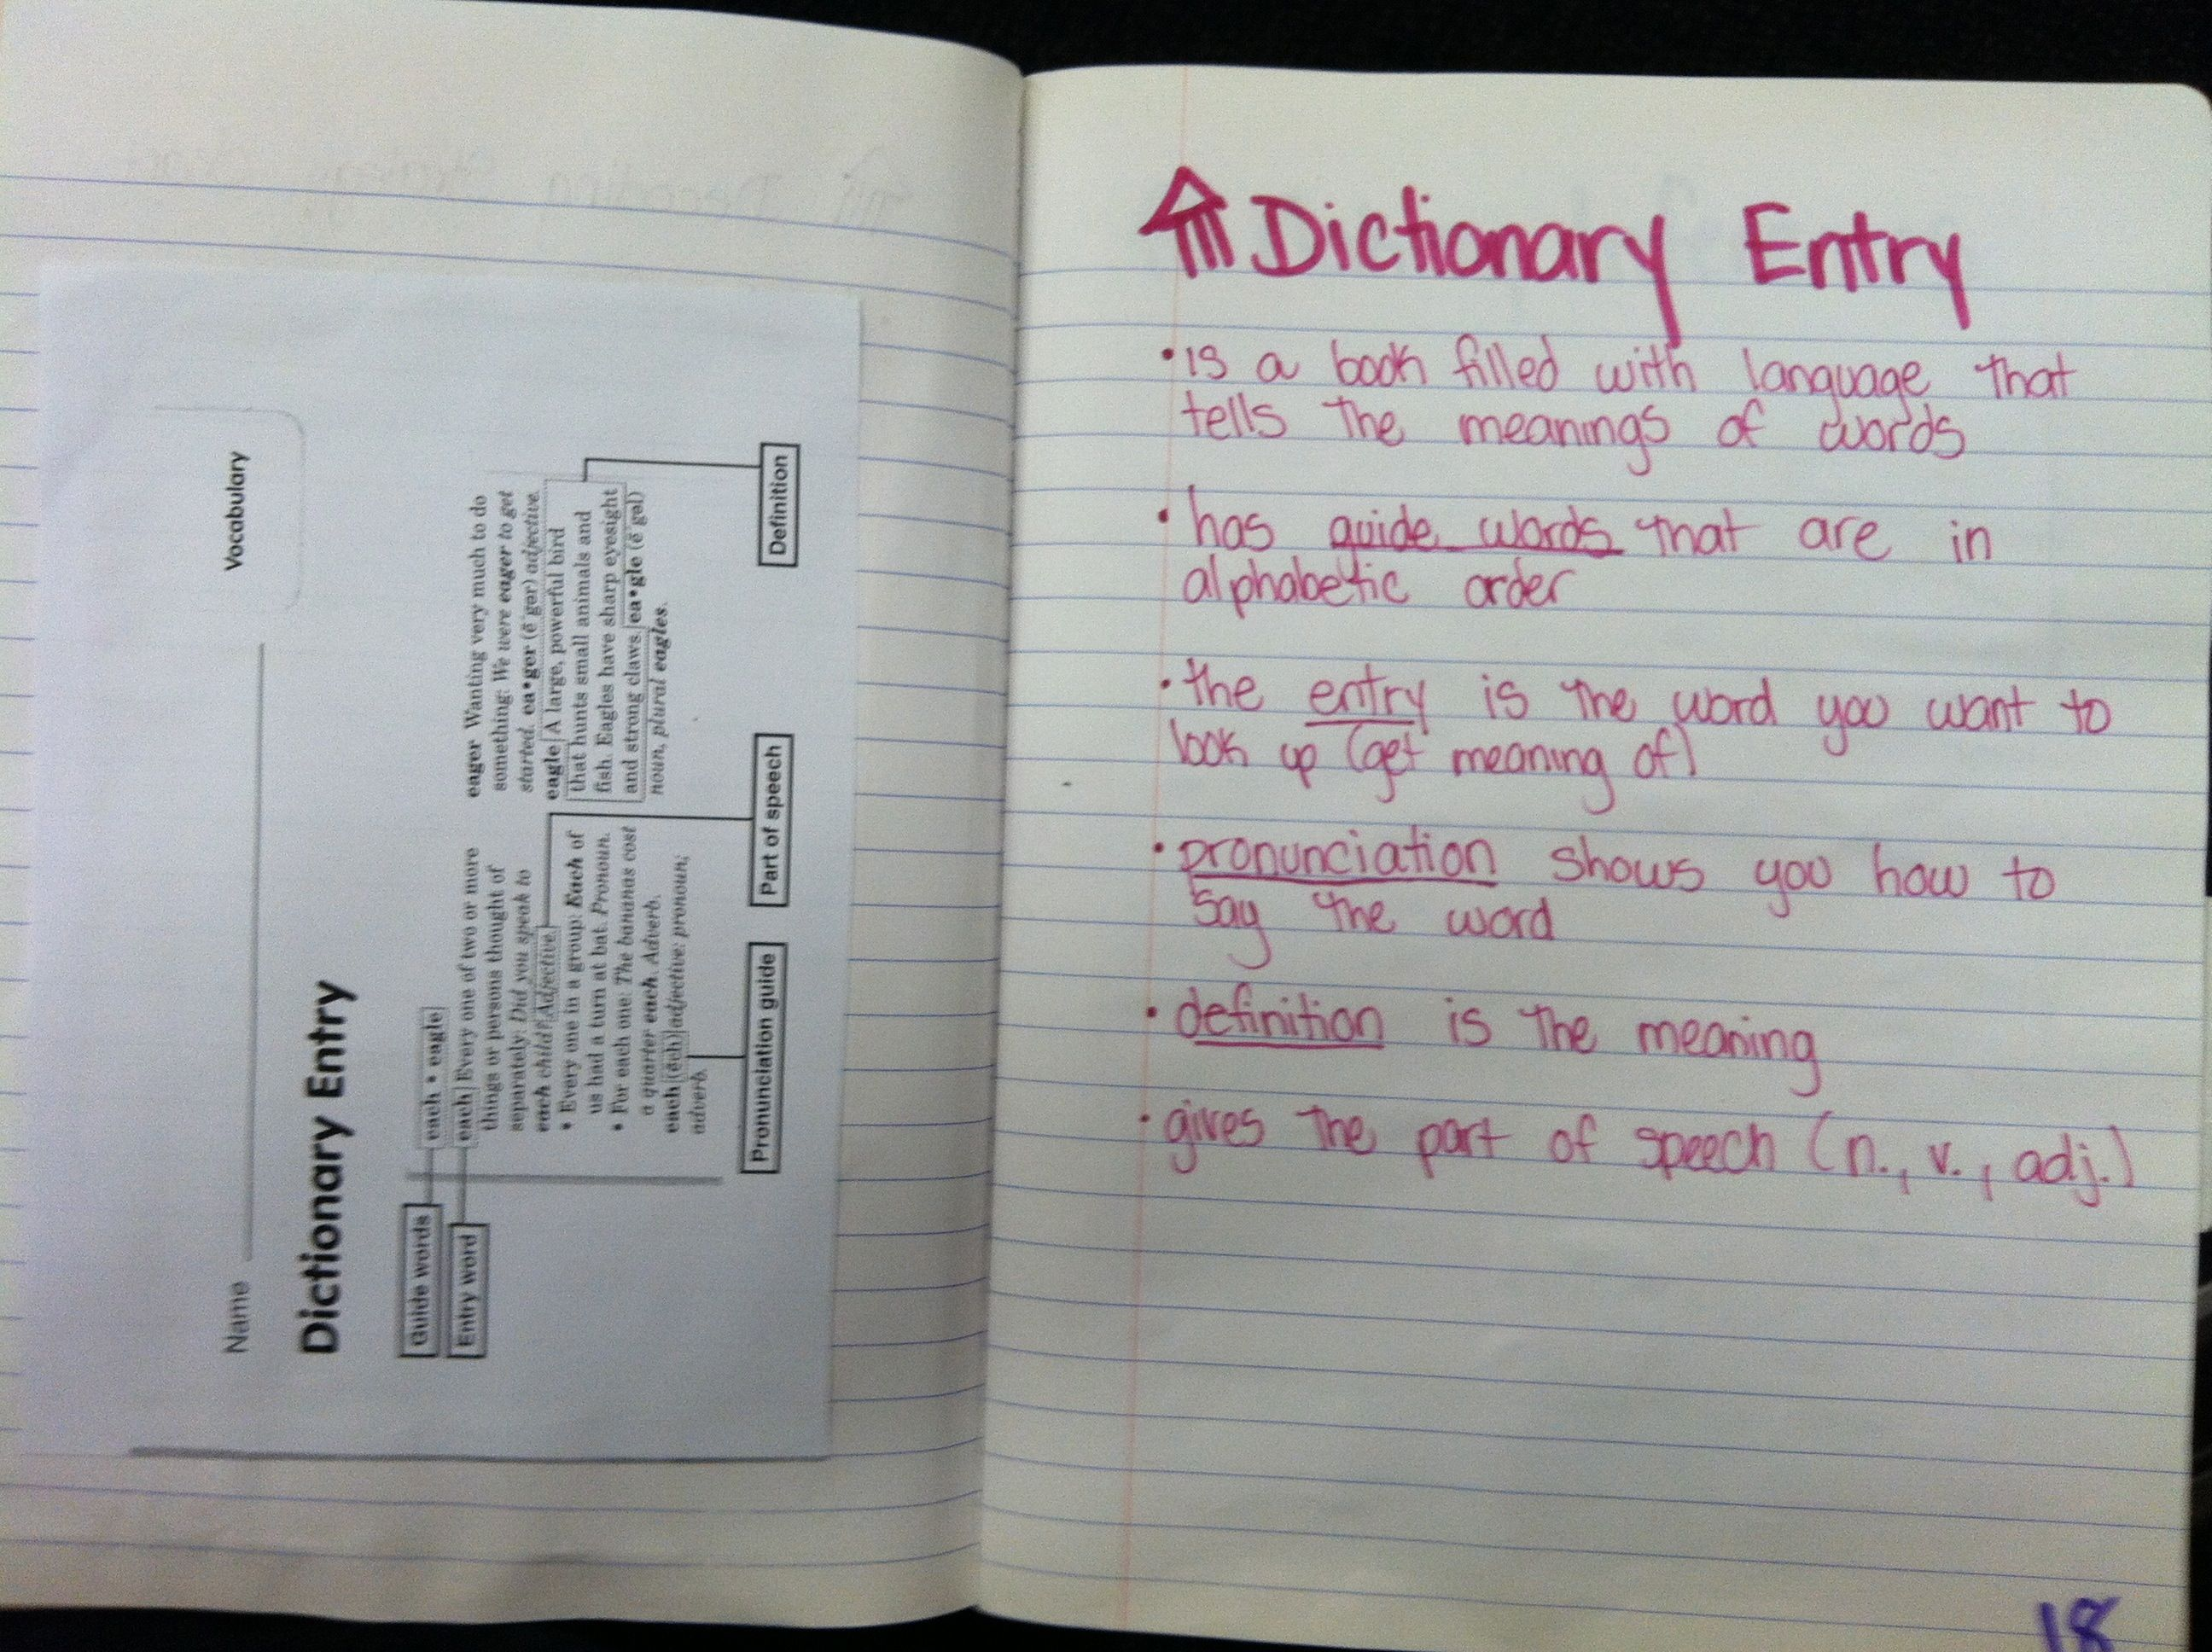 Dictionary Entry